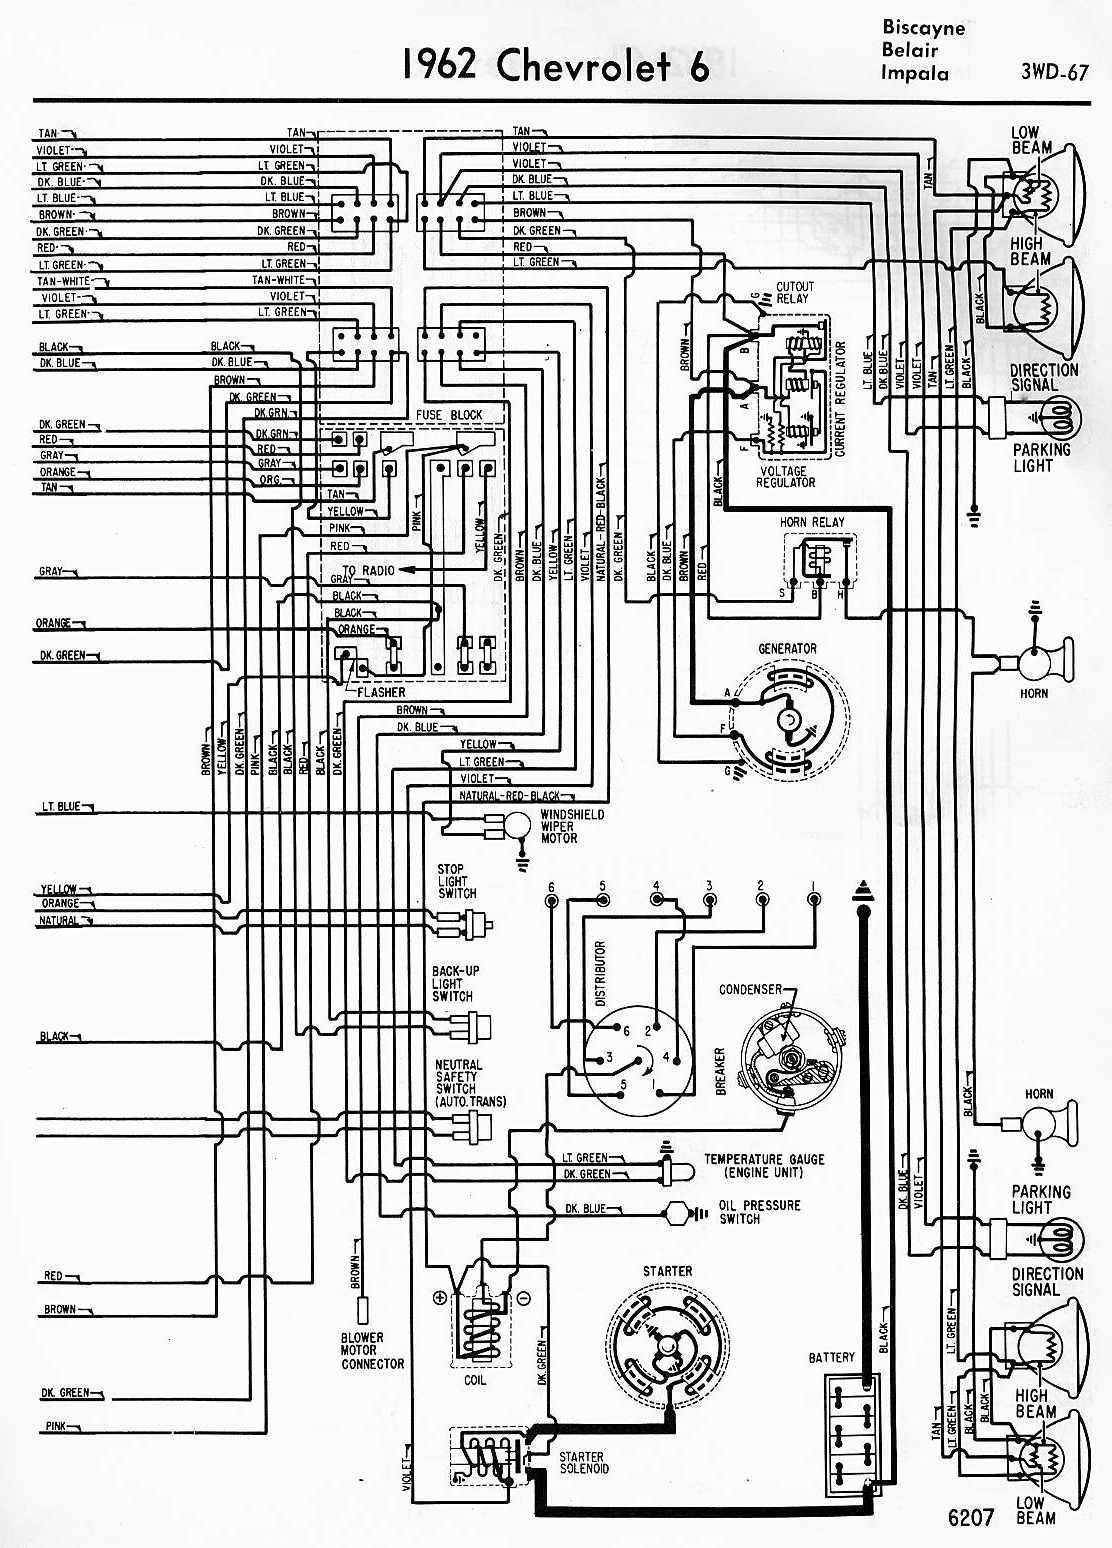 65 Pontiac Ignition Switch Wiring Diagram Library Ford Fairlane May 2011 All About Diagrams Gto Schematic 1965